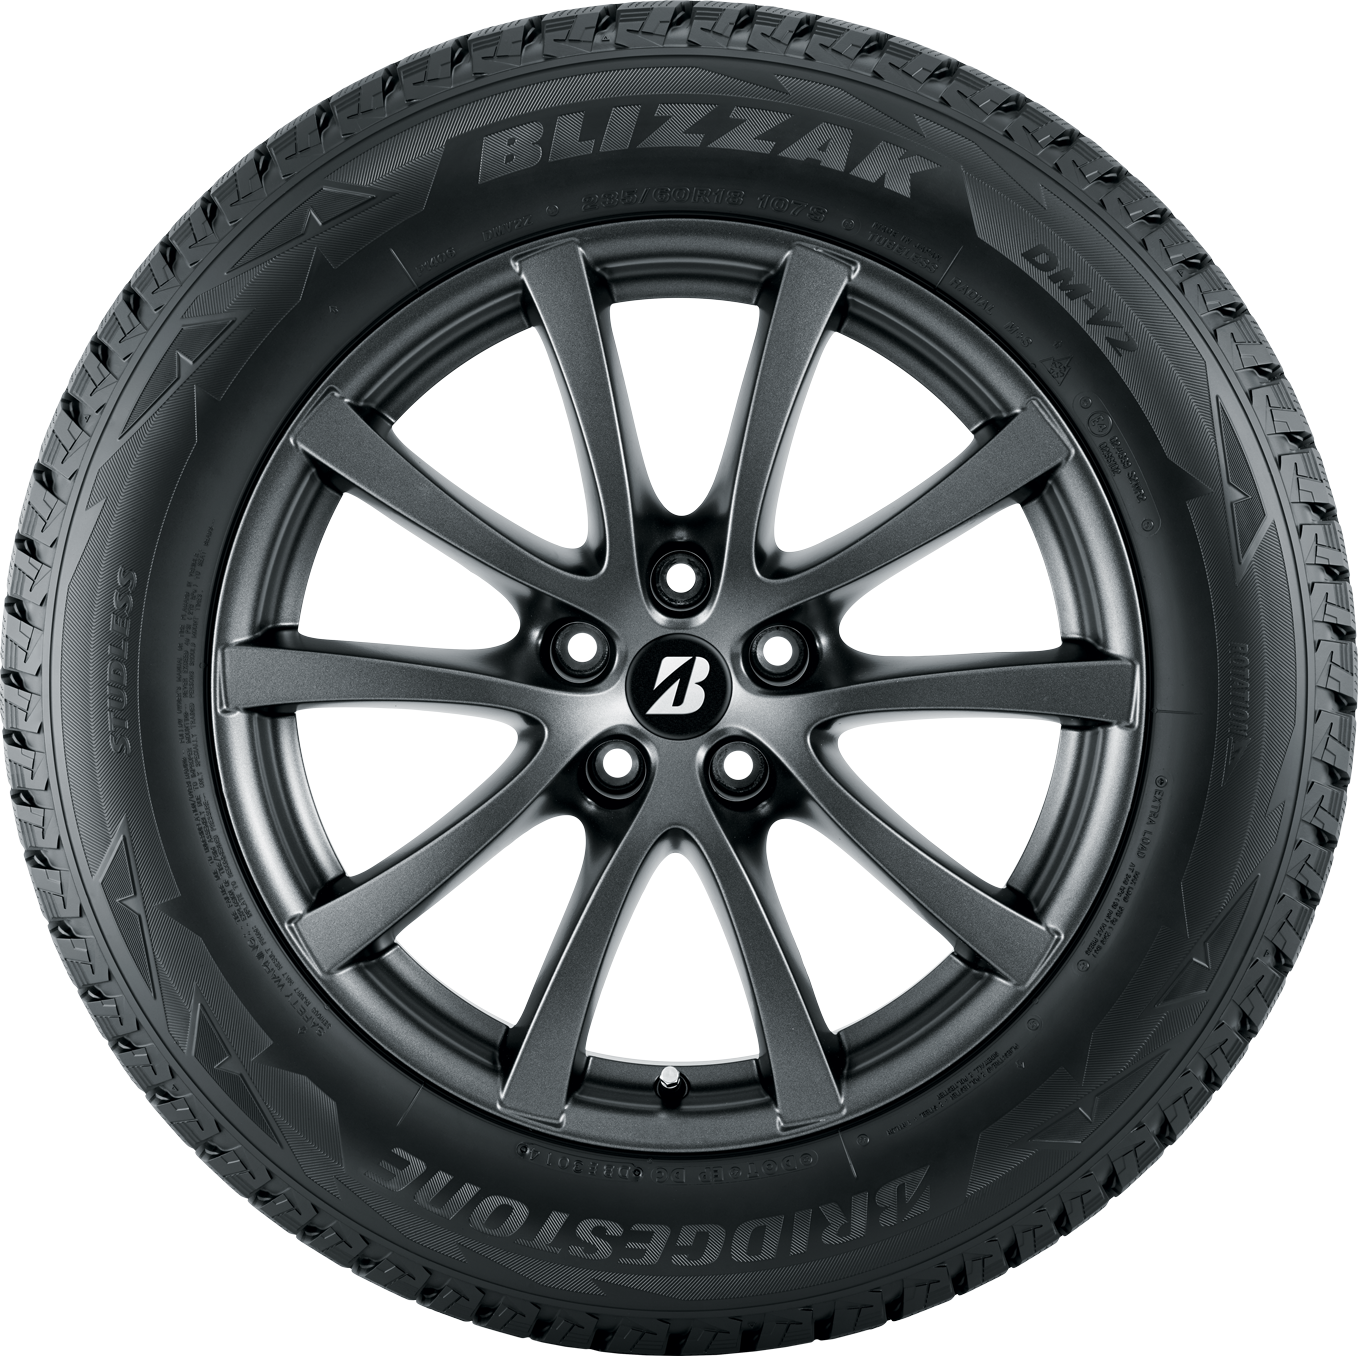 wheels and tires png